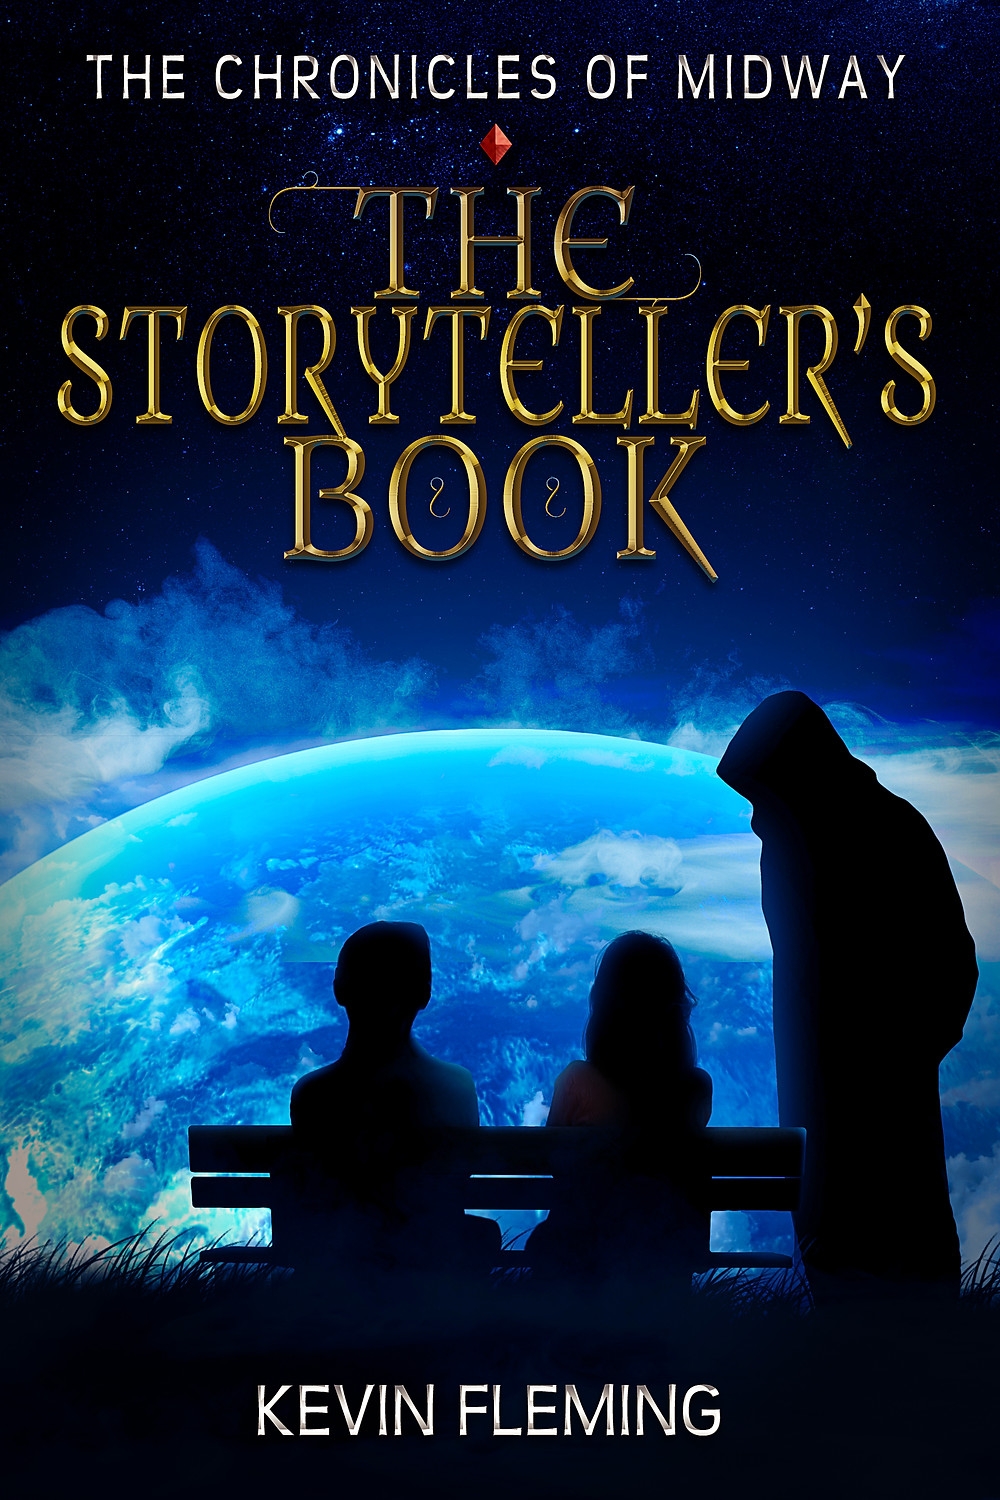 am offering free ebook copies of The Storyteller's Book to any who would be willing